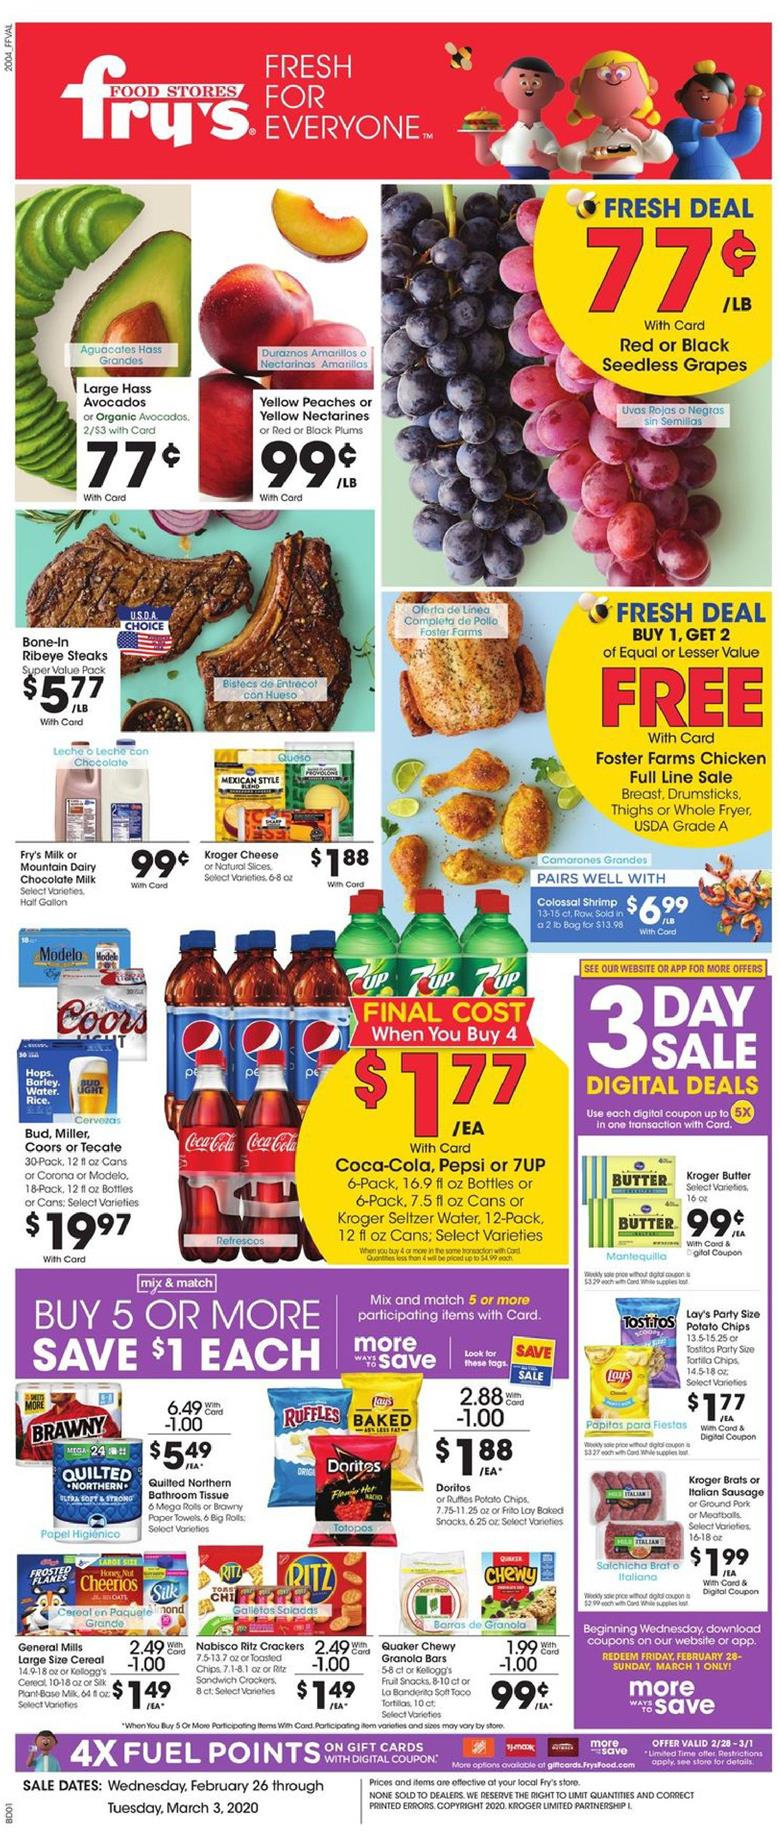 frys weekly ad feb 26 2020